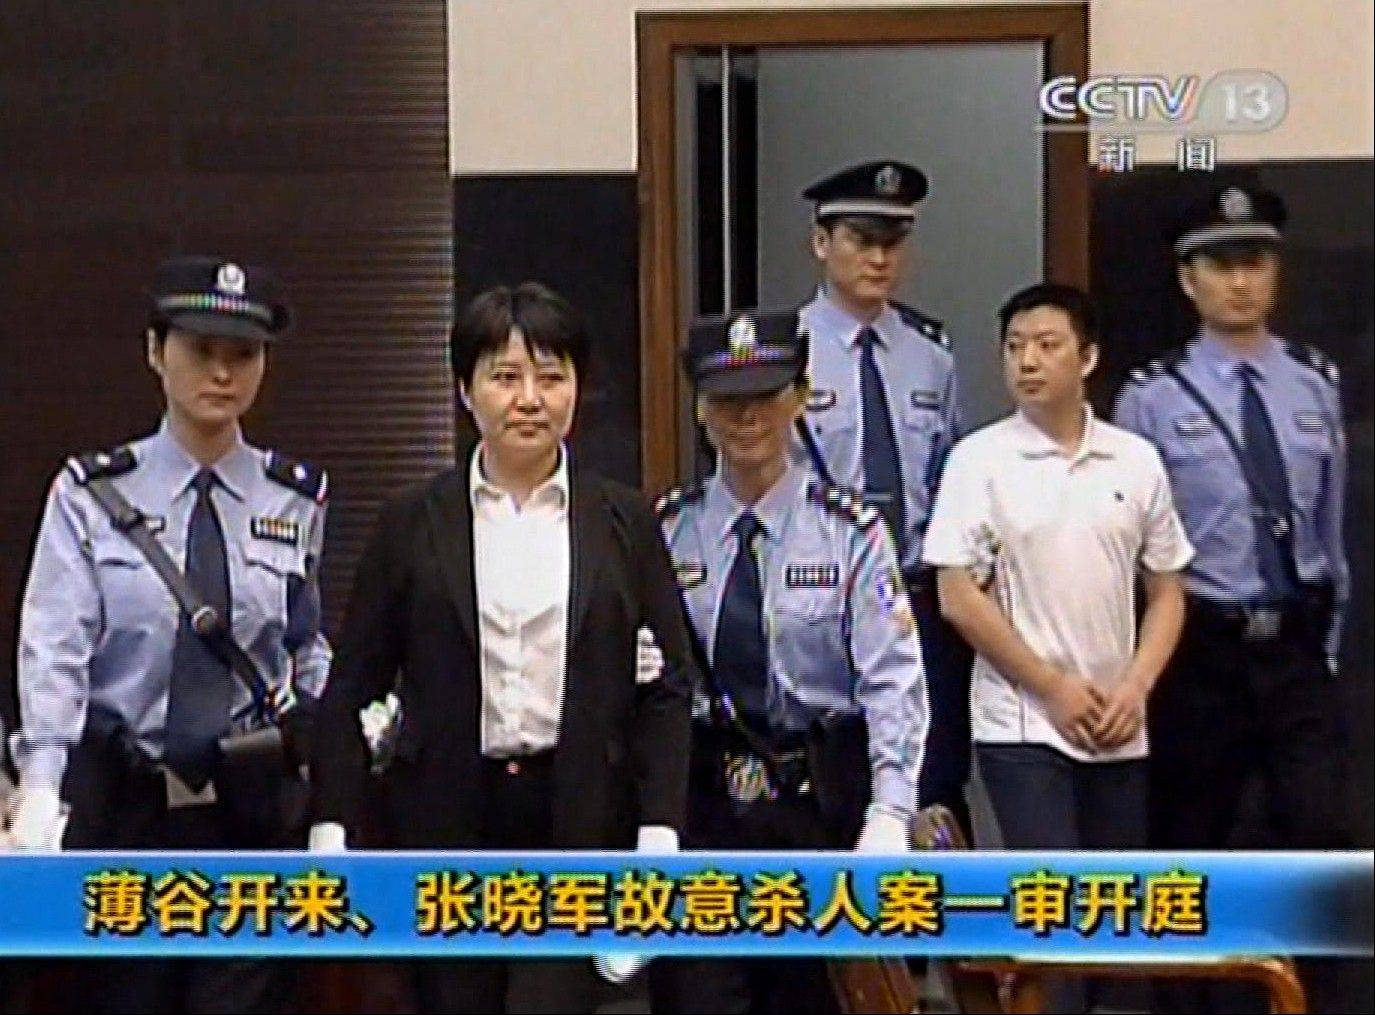 This video image taken from CCTV shows Gu Kailai, second left, the wife of disgraced politician Bo Xilai, being taken into the Intermediate People�s Court in the eastern Chinese city of Hefei Thursday Aug. 9, 2012. According to testimony Thursday in one of China�s highest-profile murder trials in years, Gu lured British businessman Neil Heywood to a hotel, where she got him drunk and fed him poison.